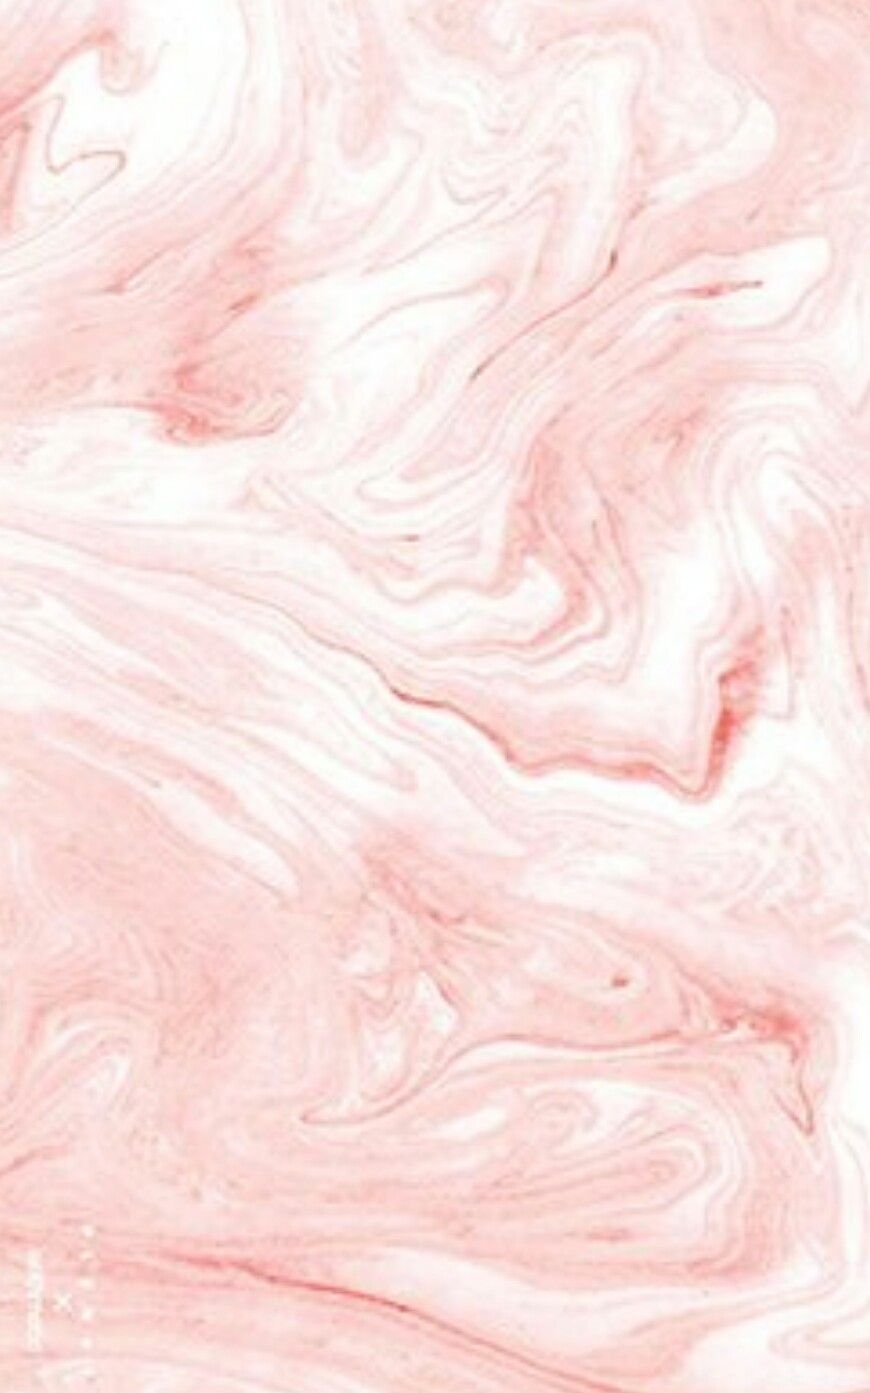 Glass placemats set f 6 dinner table place mats red 400x300mm ebay - Baby Pink Marble Wallpaper